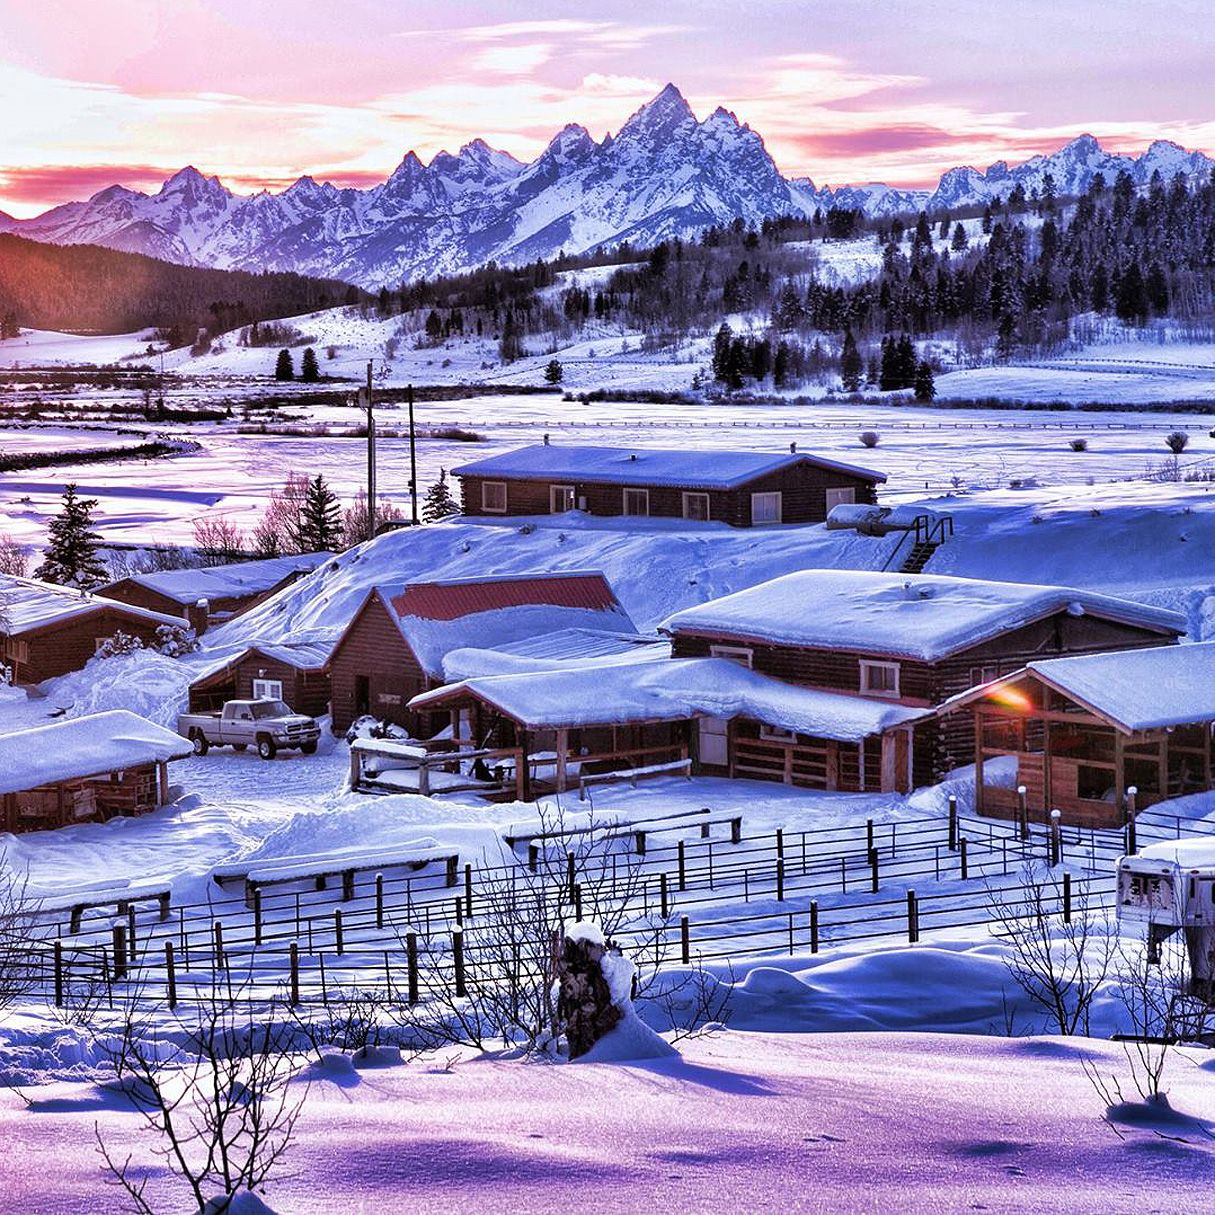 The Heart Six Ranch in Wyoming is an amazing winter ...